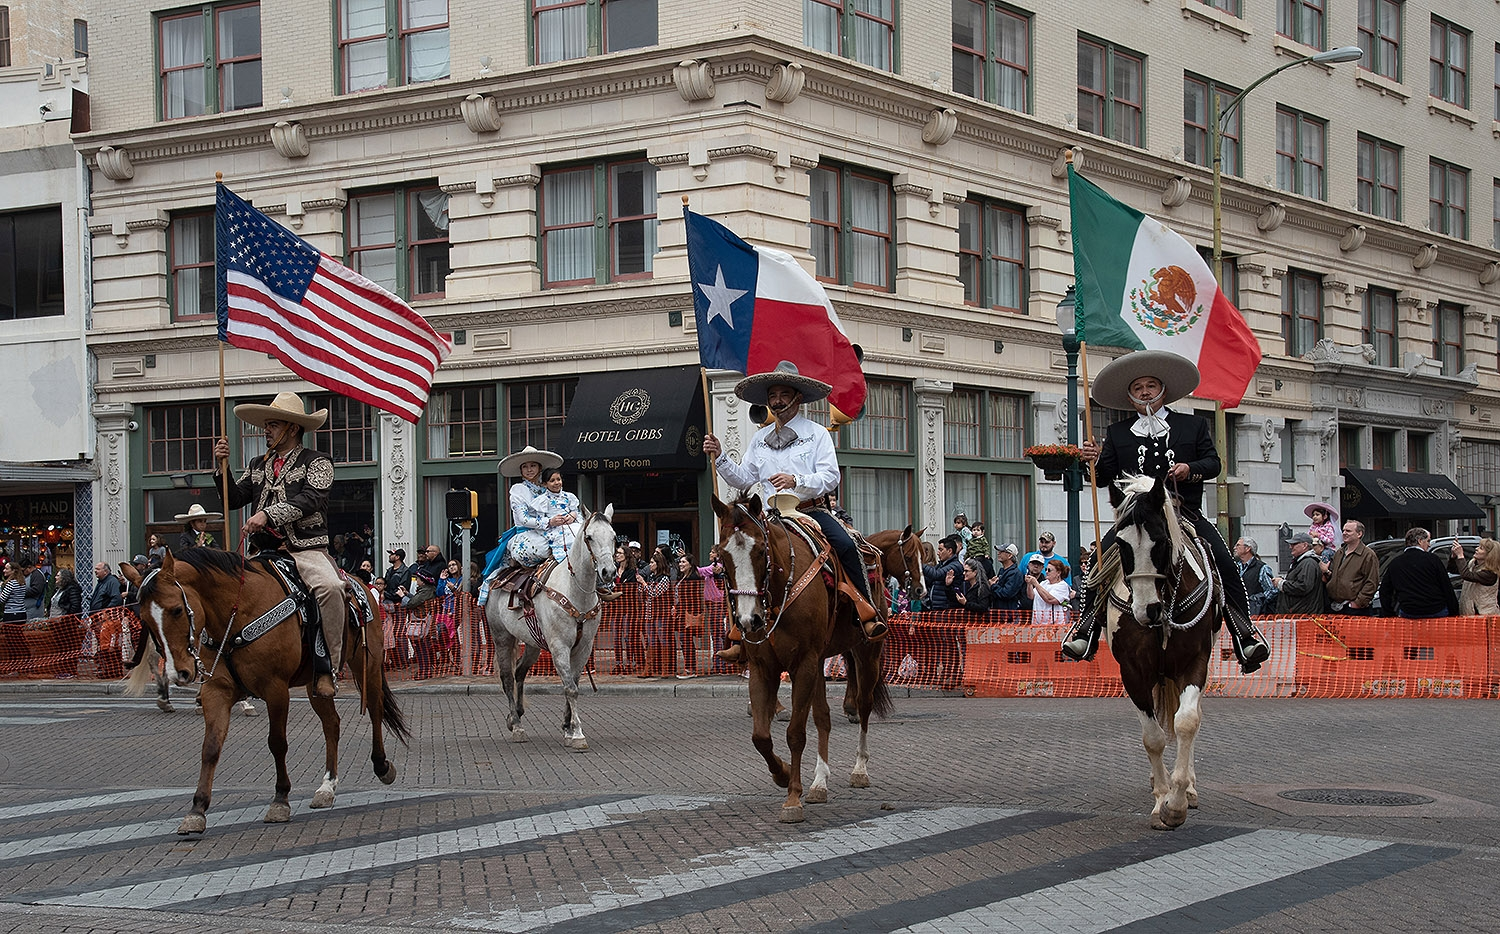 Participants hold their flags during the Western Heritage Parade and Cattle Drive Feb. 2 on S Alamo St. <em><b>V. Finster | Heron</b></em>